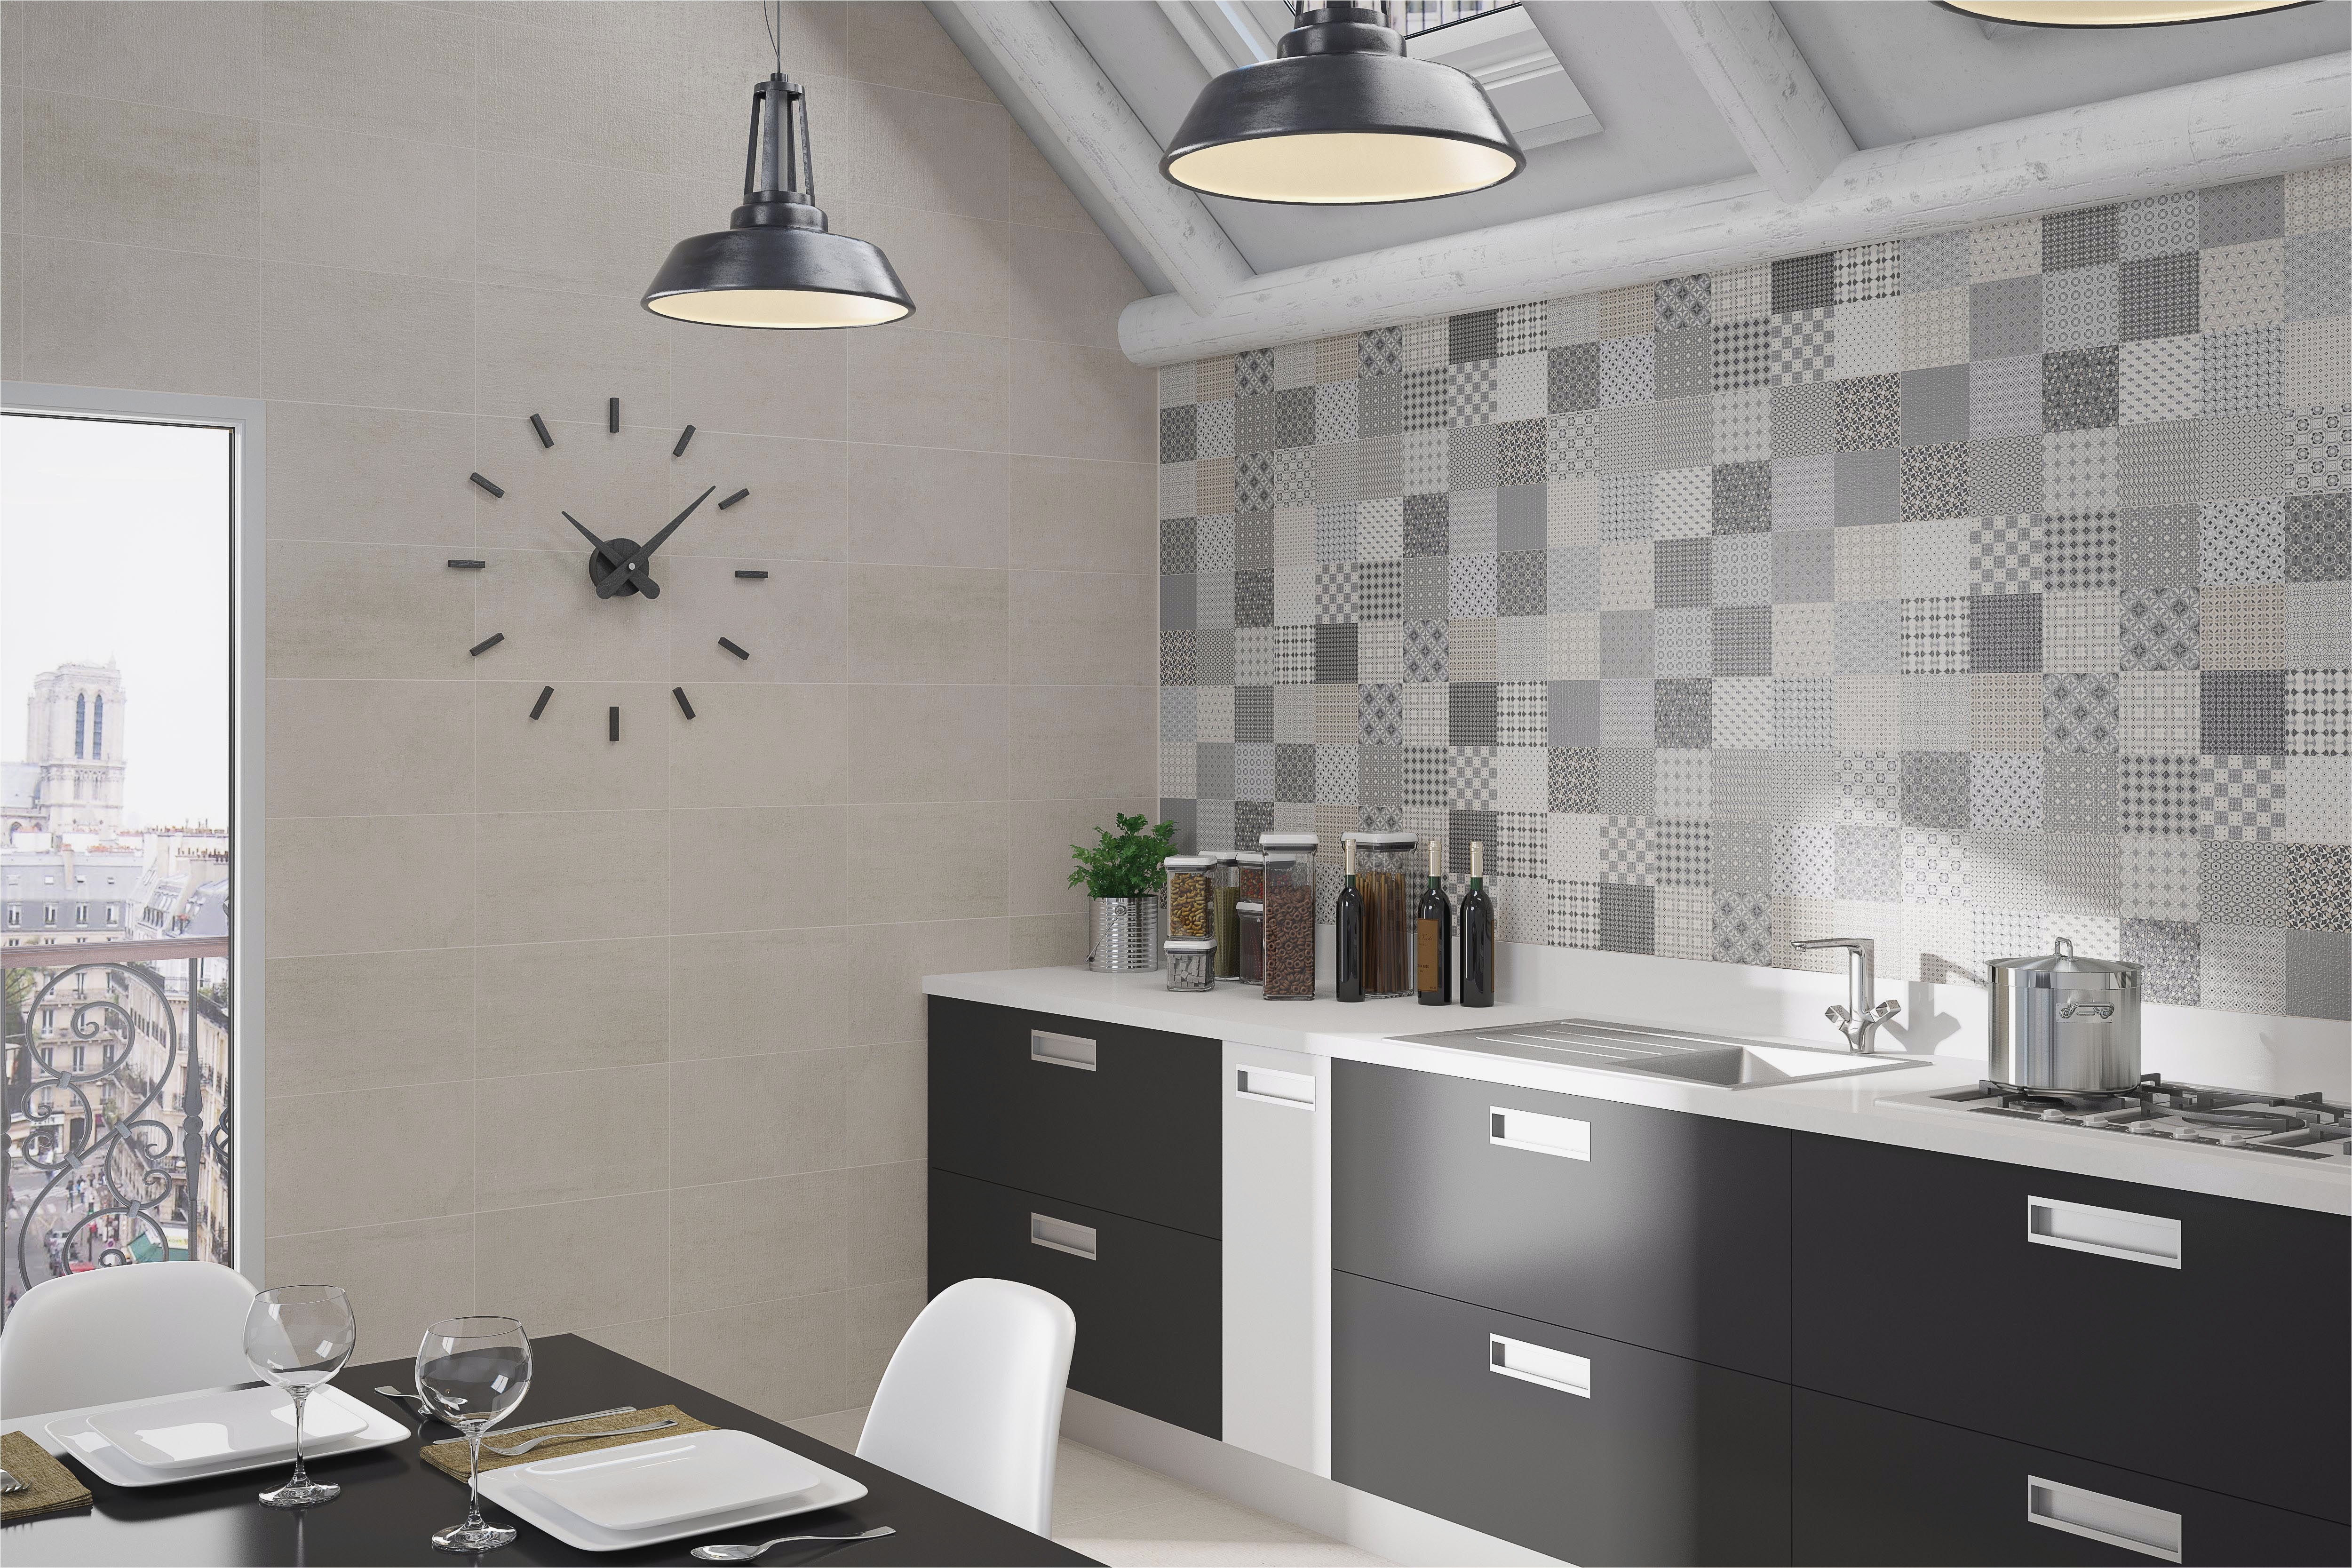 kitchen-tile-designs-awesome-kitchen-wal